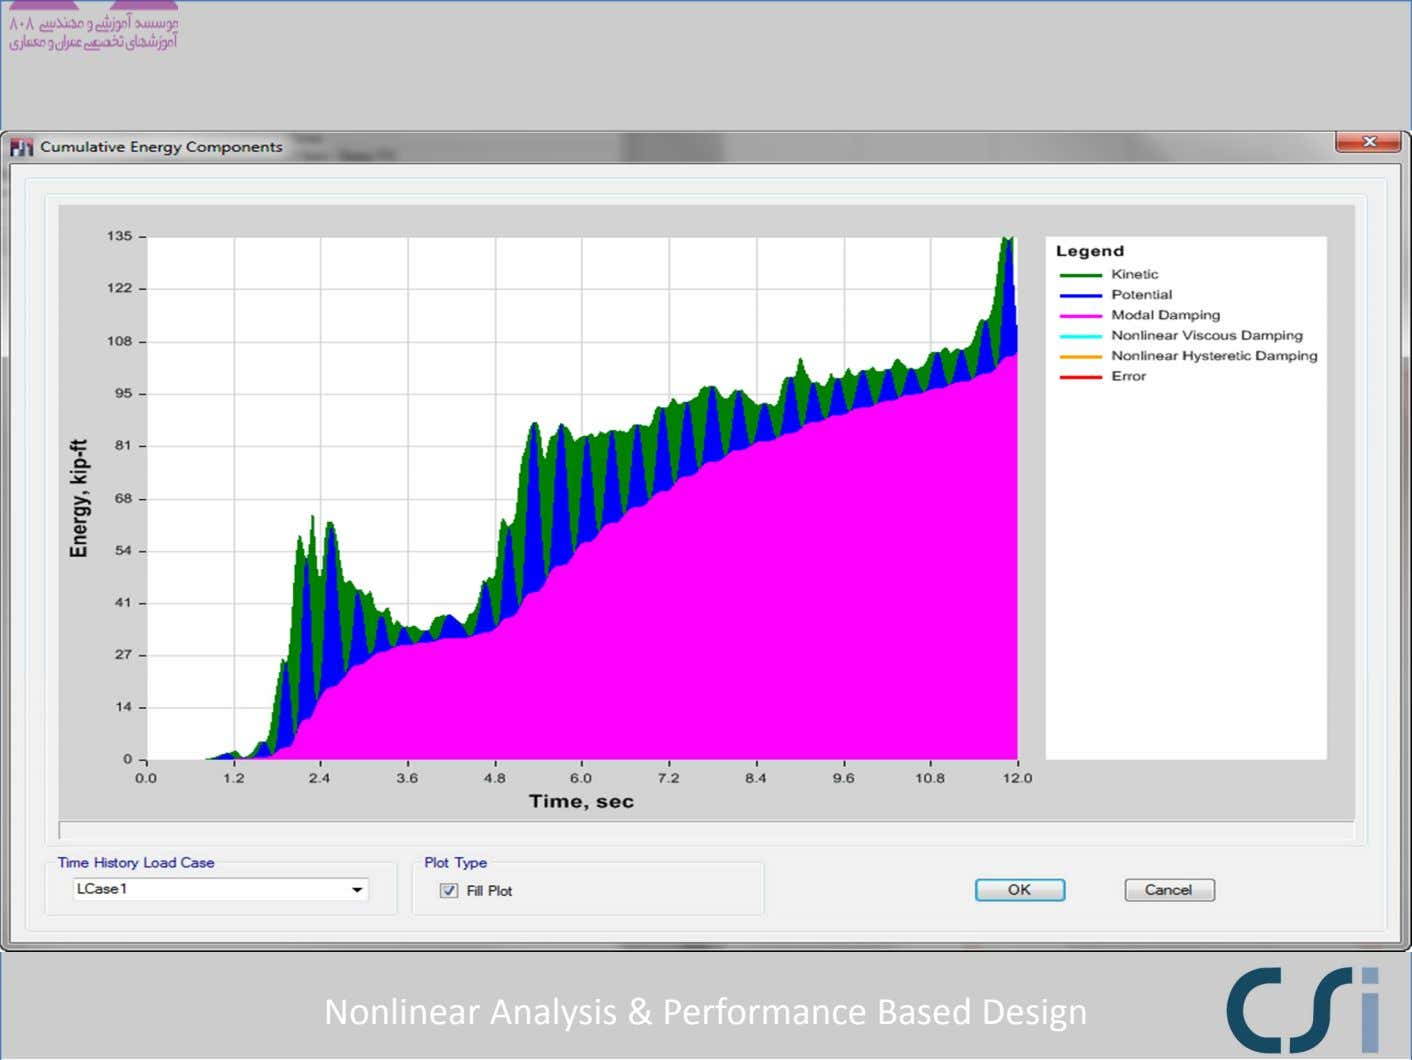 Nonlinear Analysis & Performance Based Design